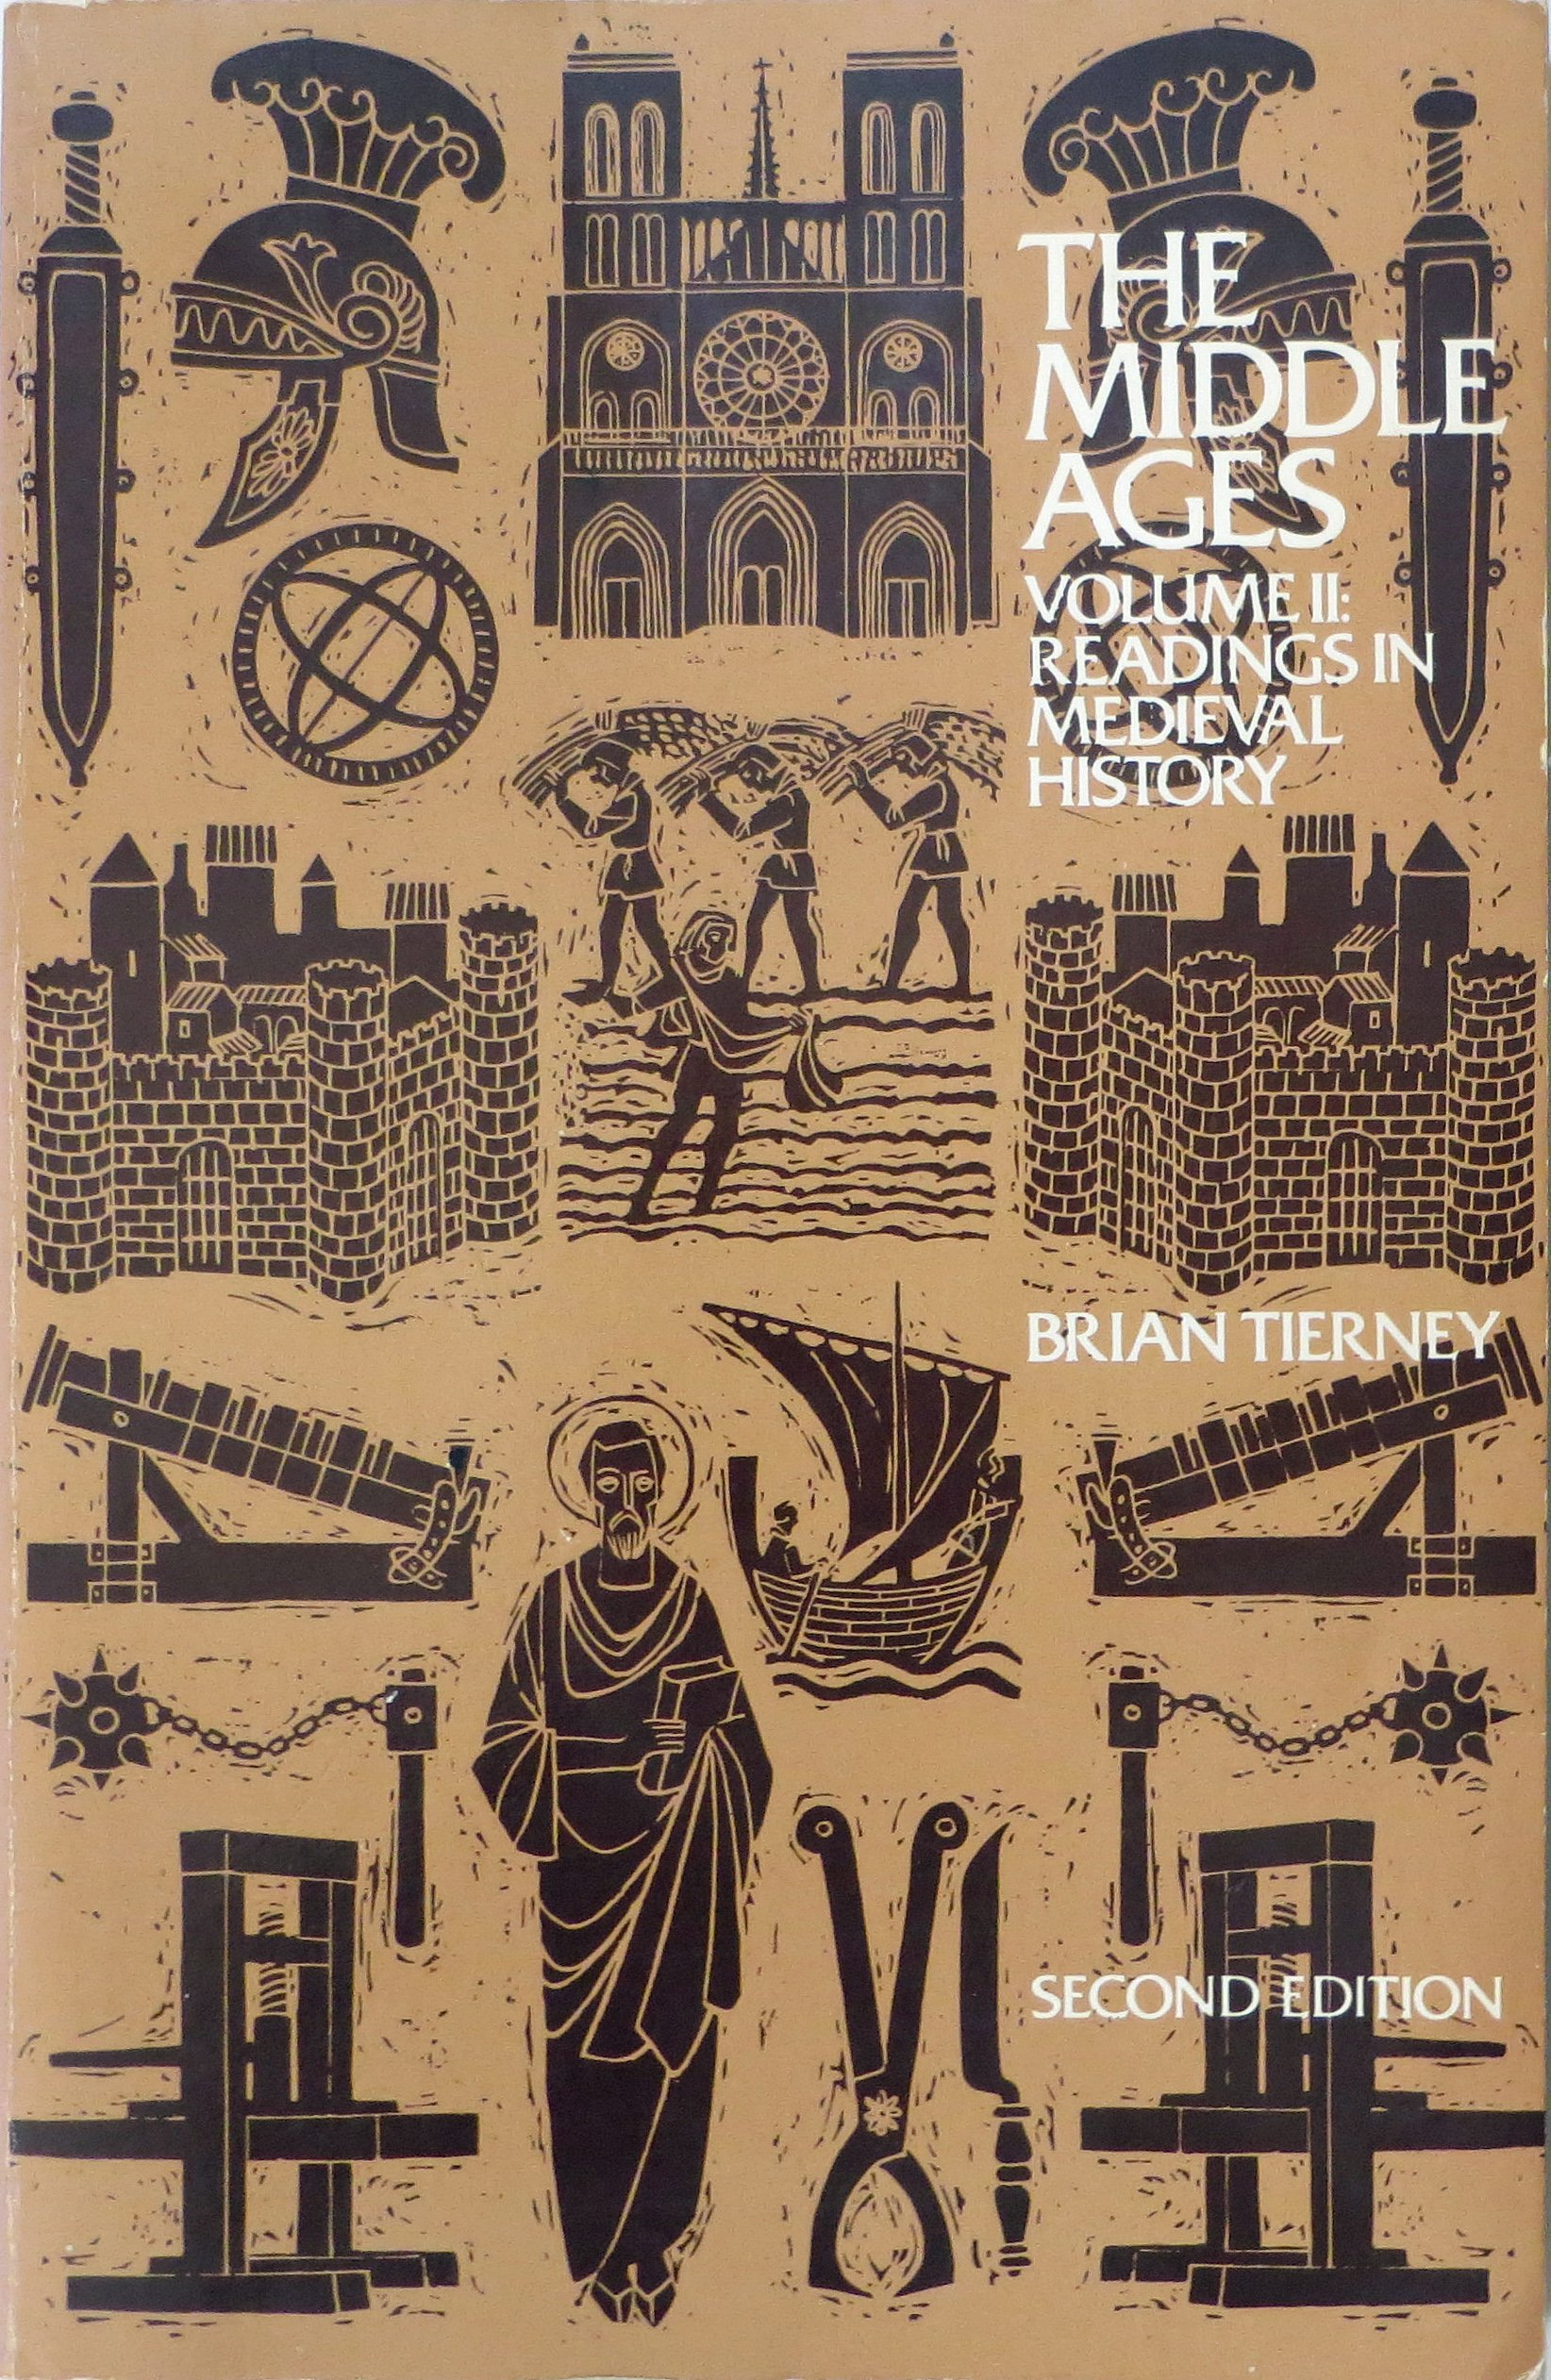 BRIAN TIERNEY - The Middle Ages volume II. Readings in medieval history